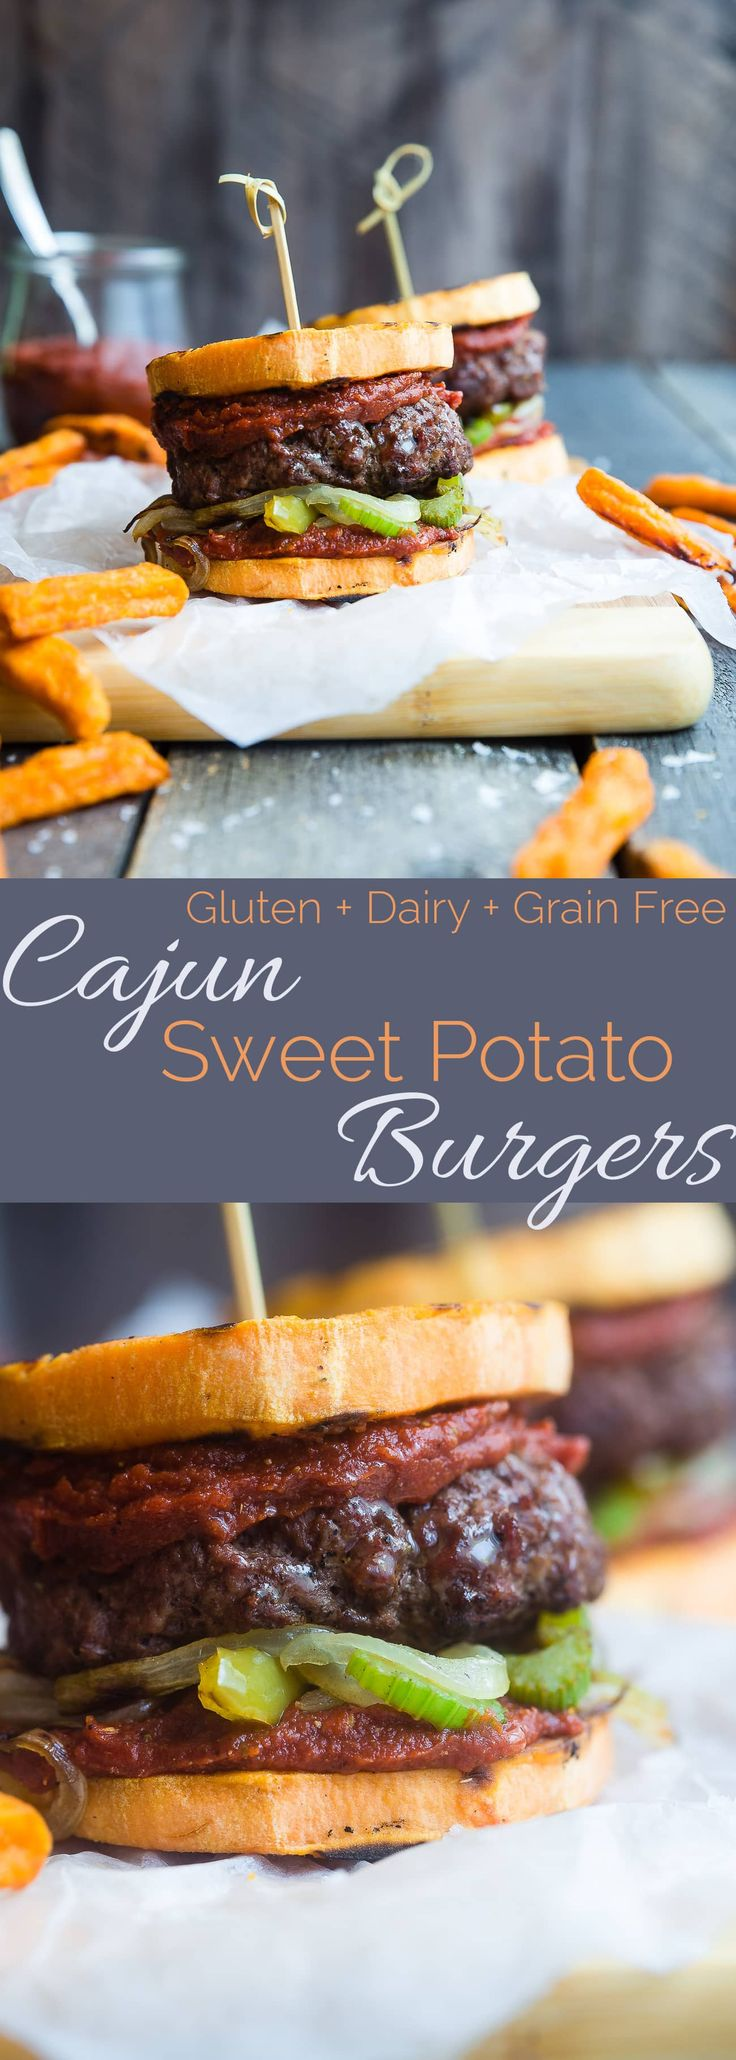 Healthy Cajun Burgers - These crowd-pleasing burgers use grilled sweet potatoes as buns instead of bread! They're a healthy gluten and dairy free summer meal for only 300 calories! | Foodfaithfitness.com | @FoodFaithFit via @FoodFaithFit